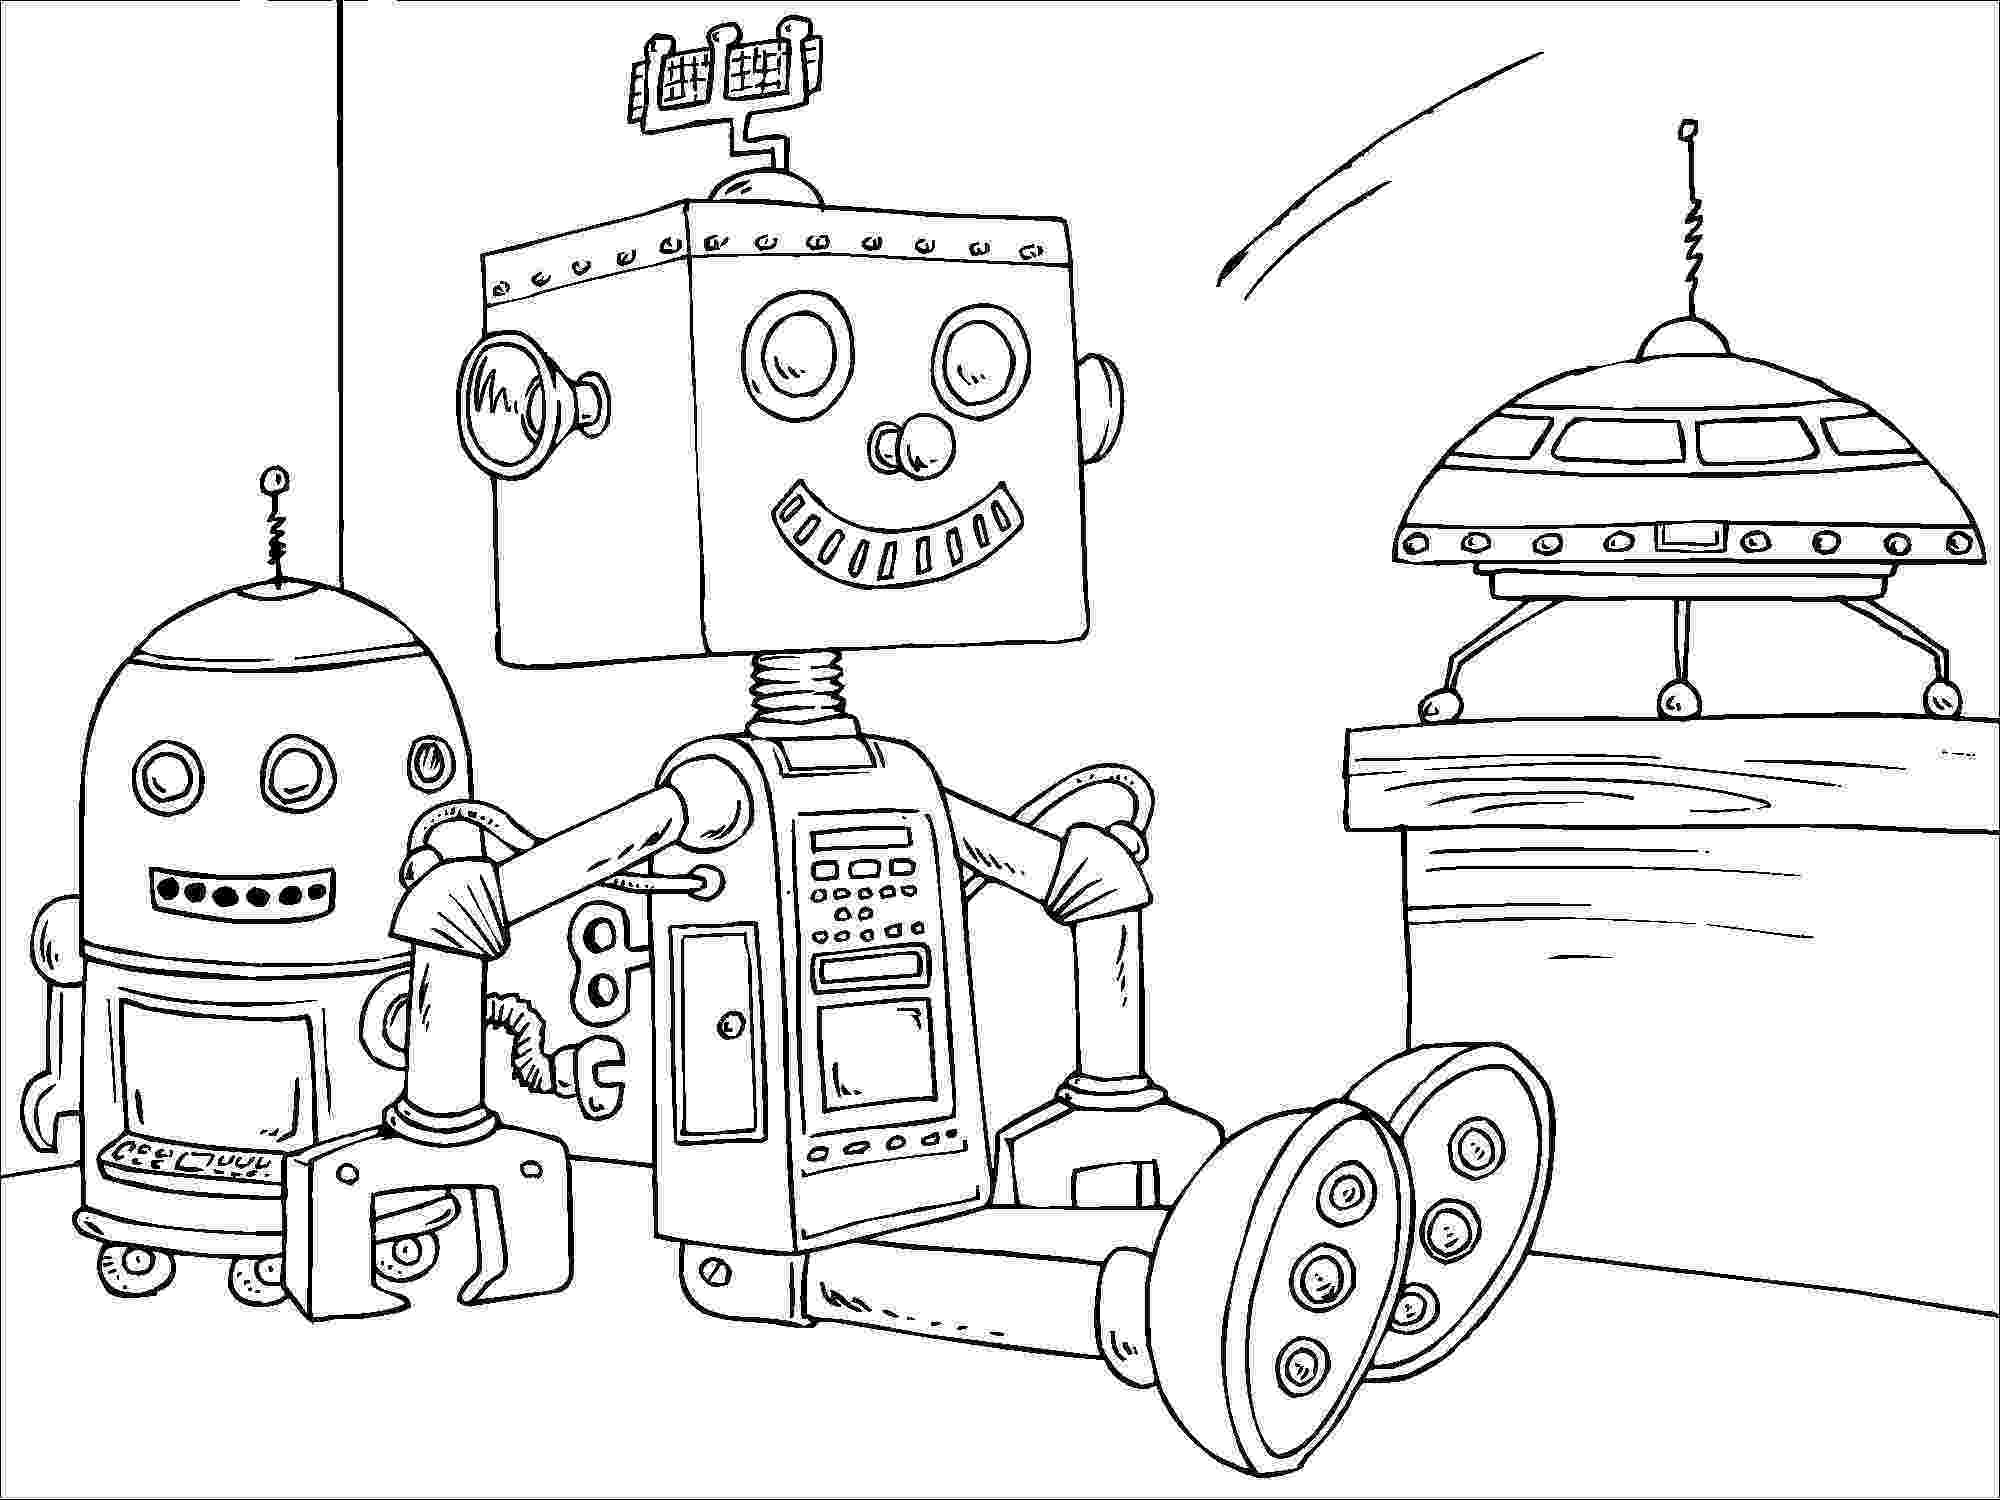 robots coloring pages free printable robot coloring pages for kids cool2bkids coloring pages robots 1 1